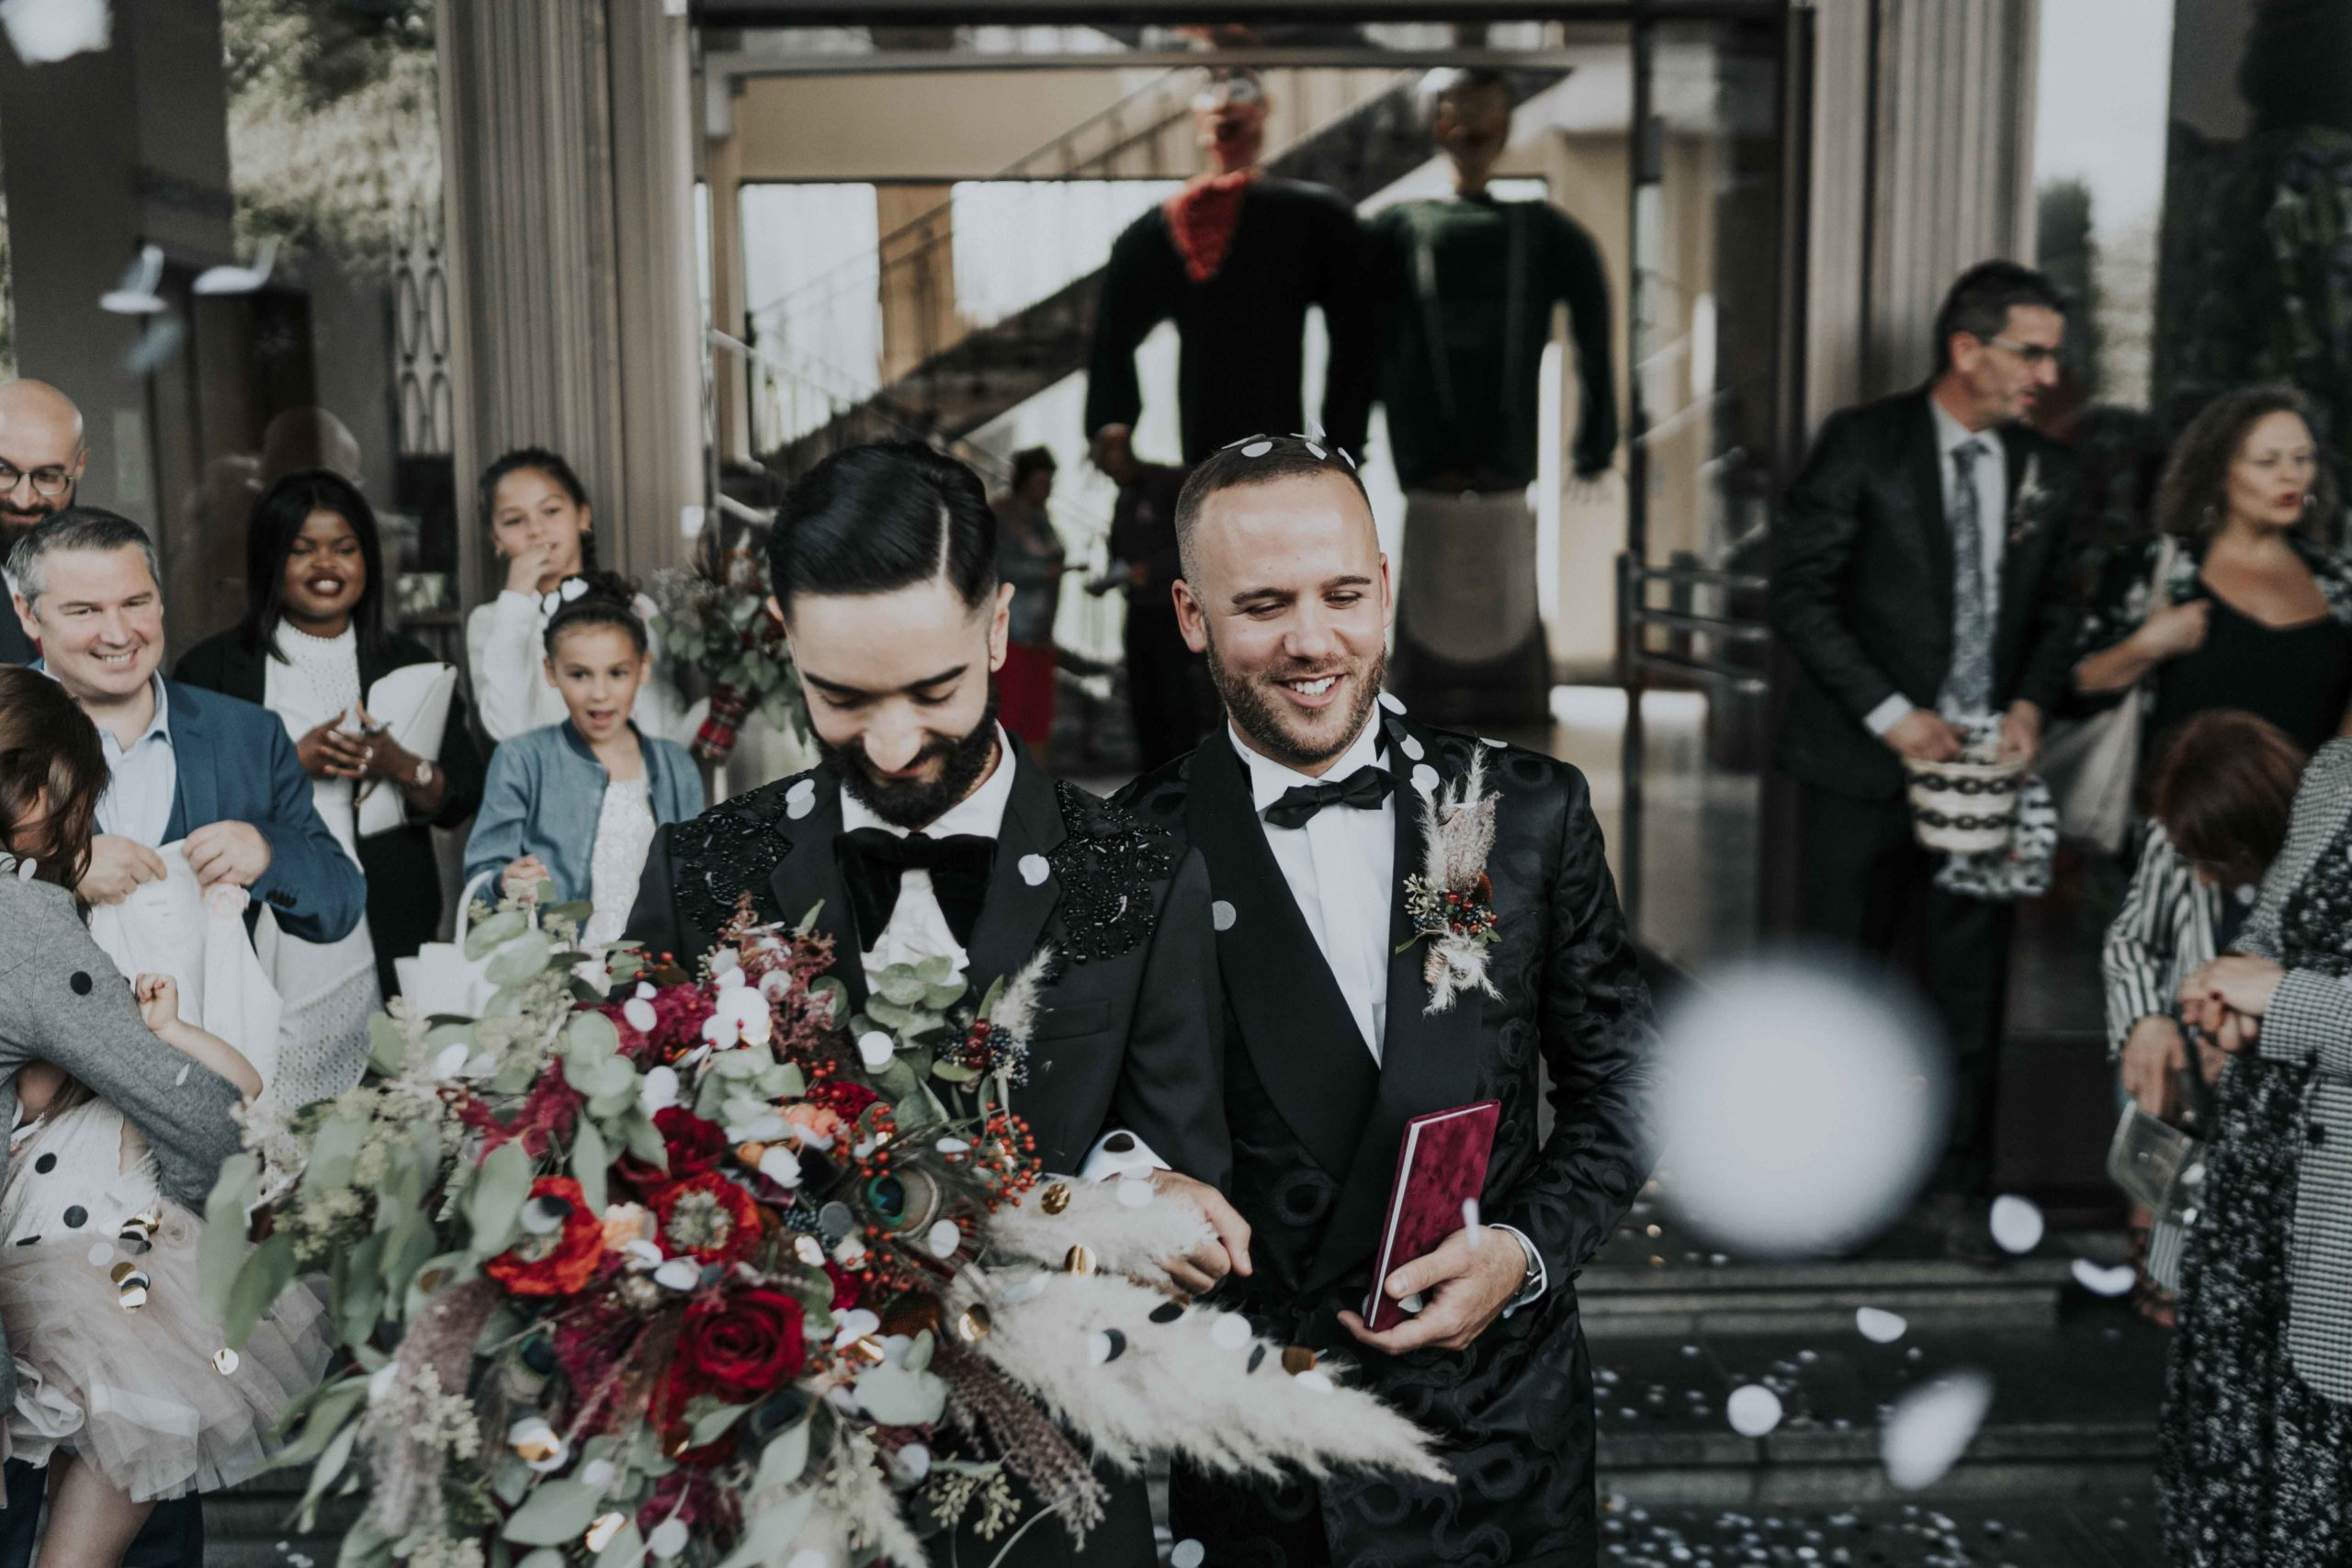 FOREVER_FANNY_MYARD_PHOTOGRAPHY_LK_MARIAGE-274